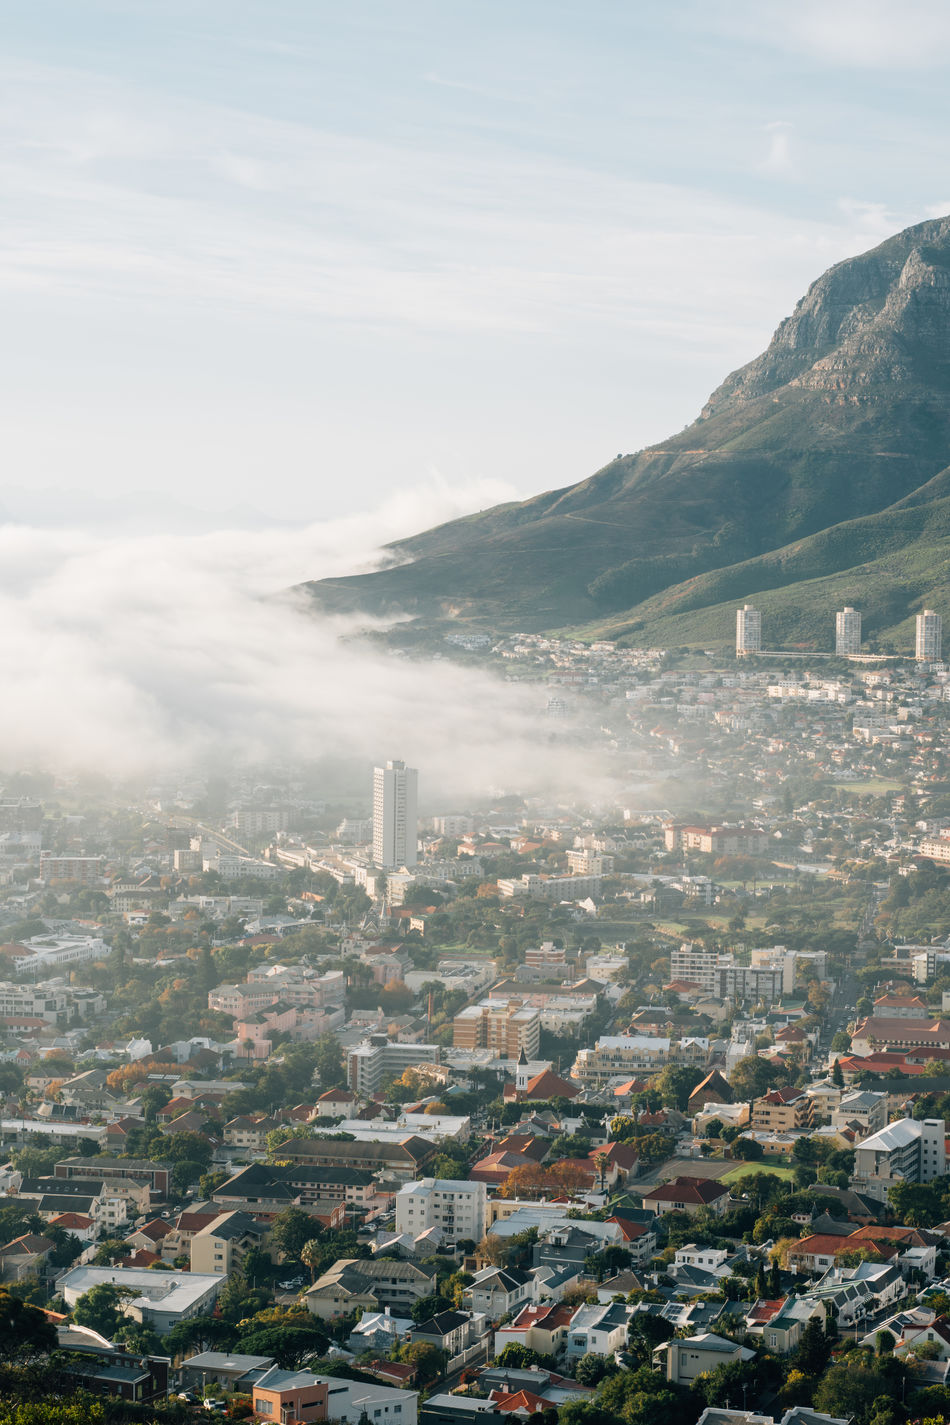 Cape Town Cape Town, South Africa City Mist Misty Misty Morning Mountains And City Urban